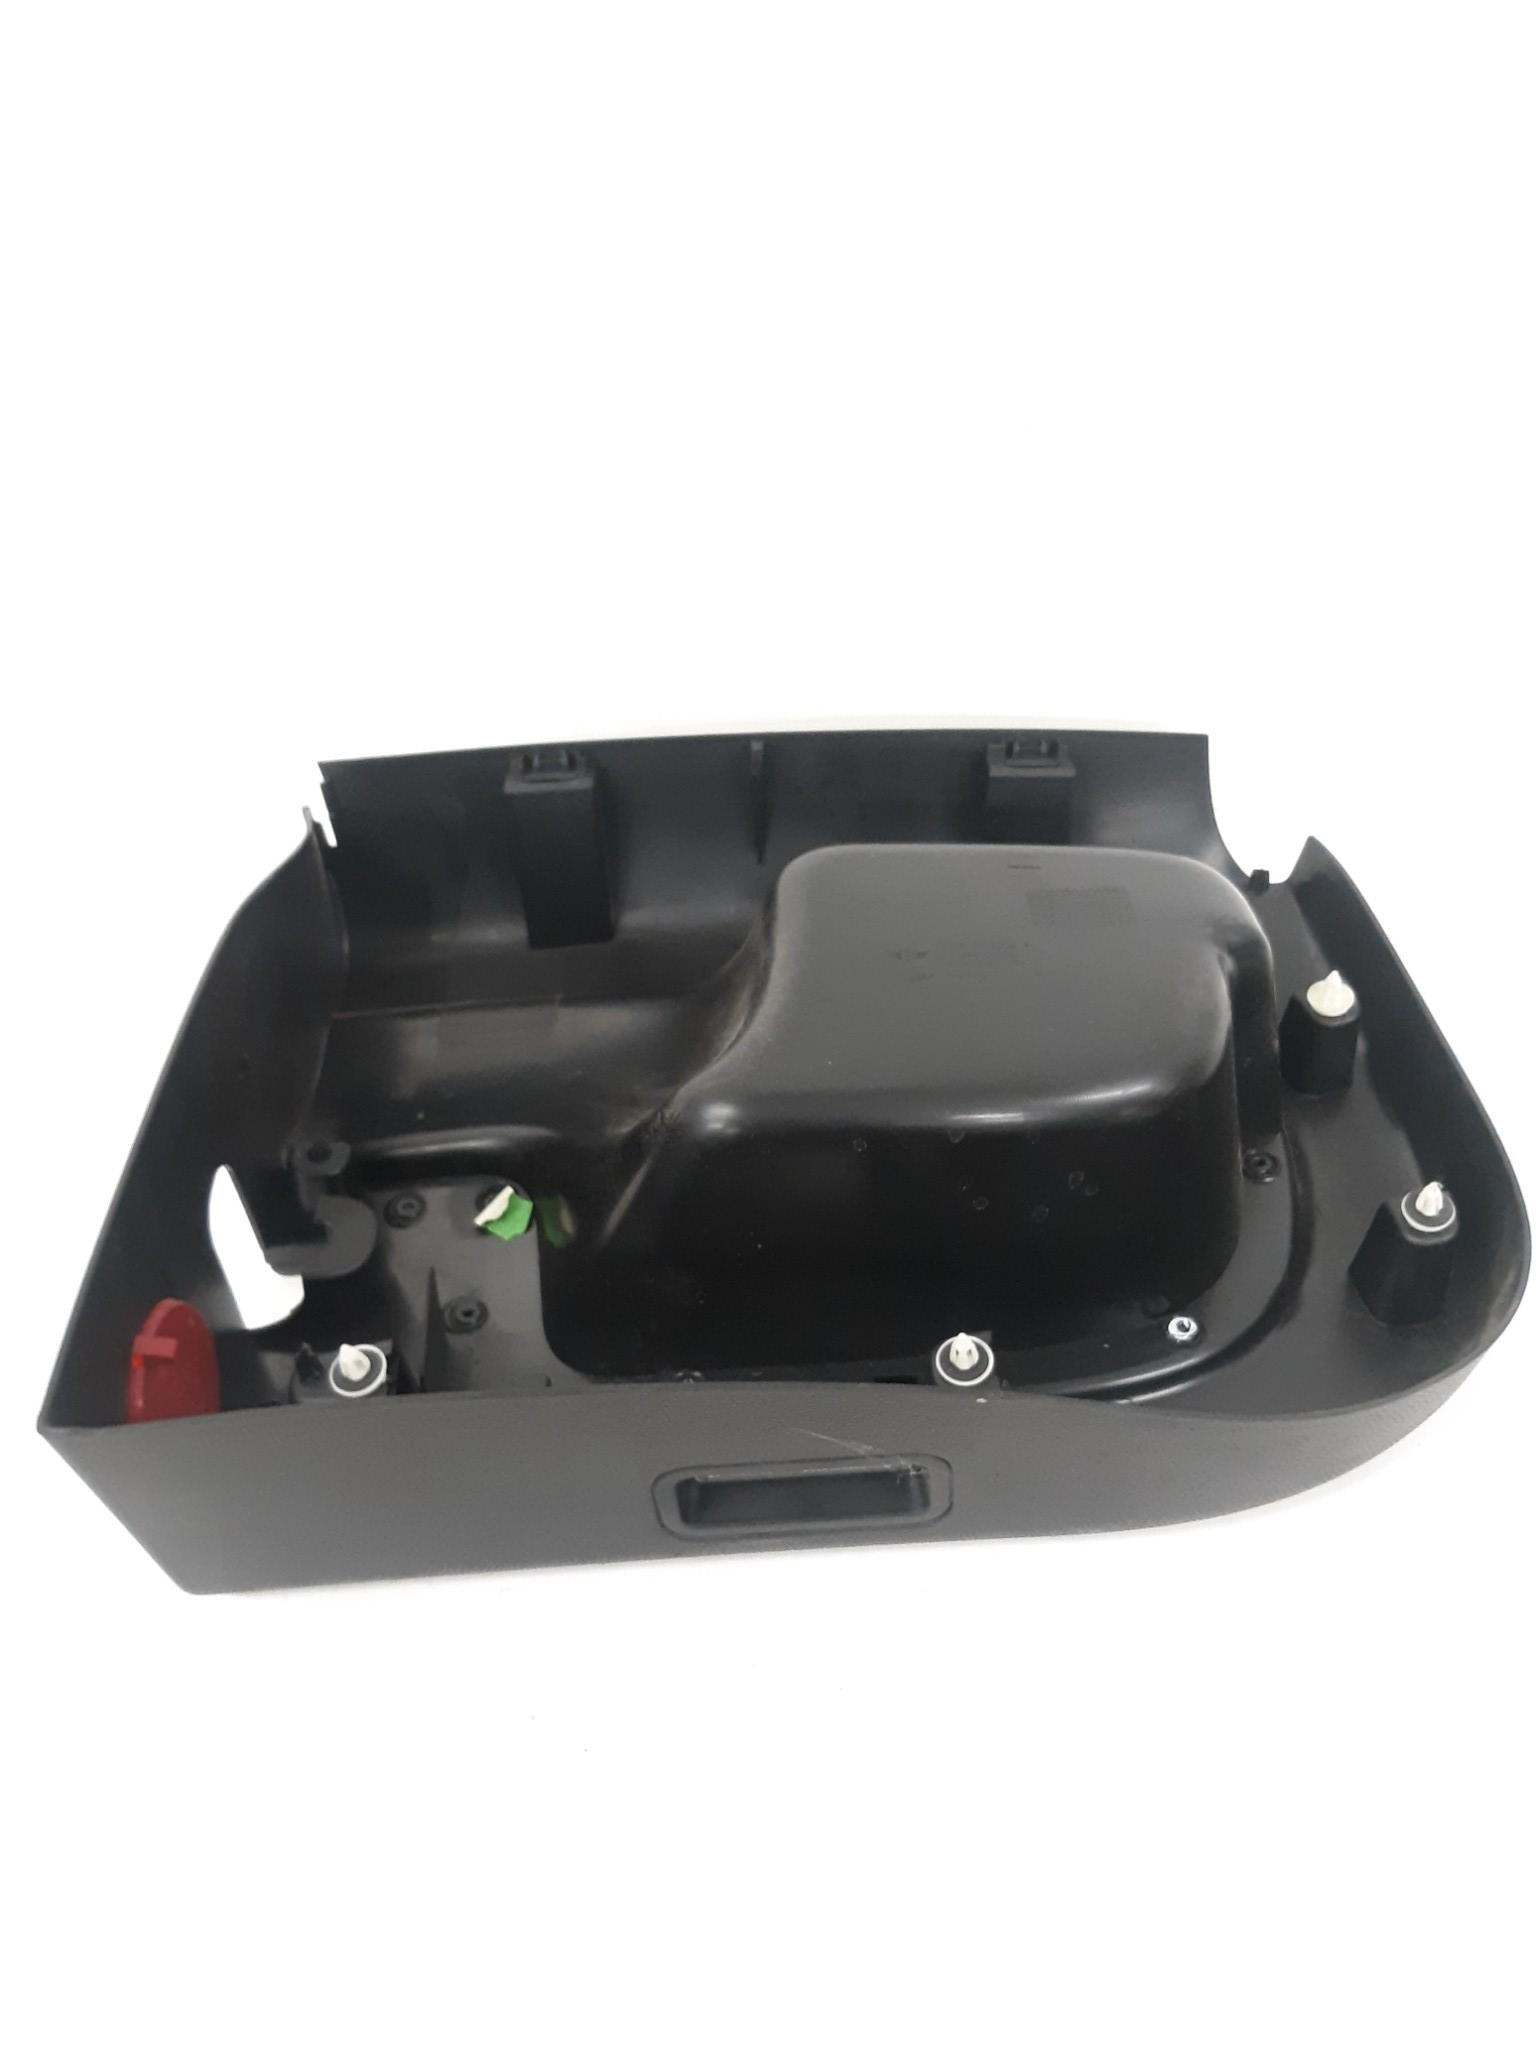 08-14 MINI Cooper Clubman R55 Right B/S Rear Split Door Trim Panel Cover 2756200 - Click Receive Auto Parts